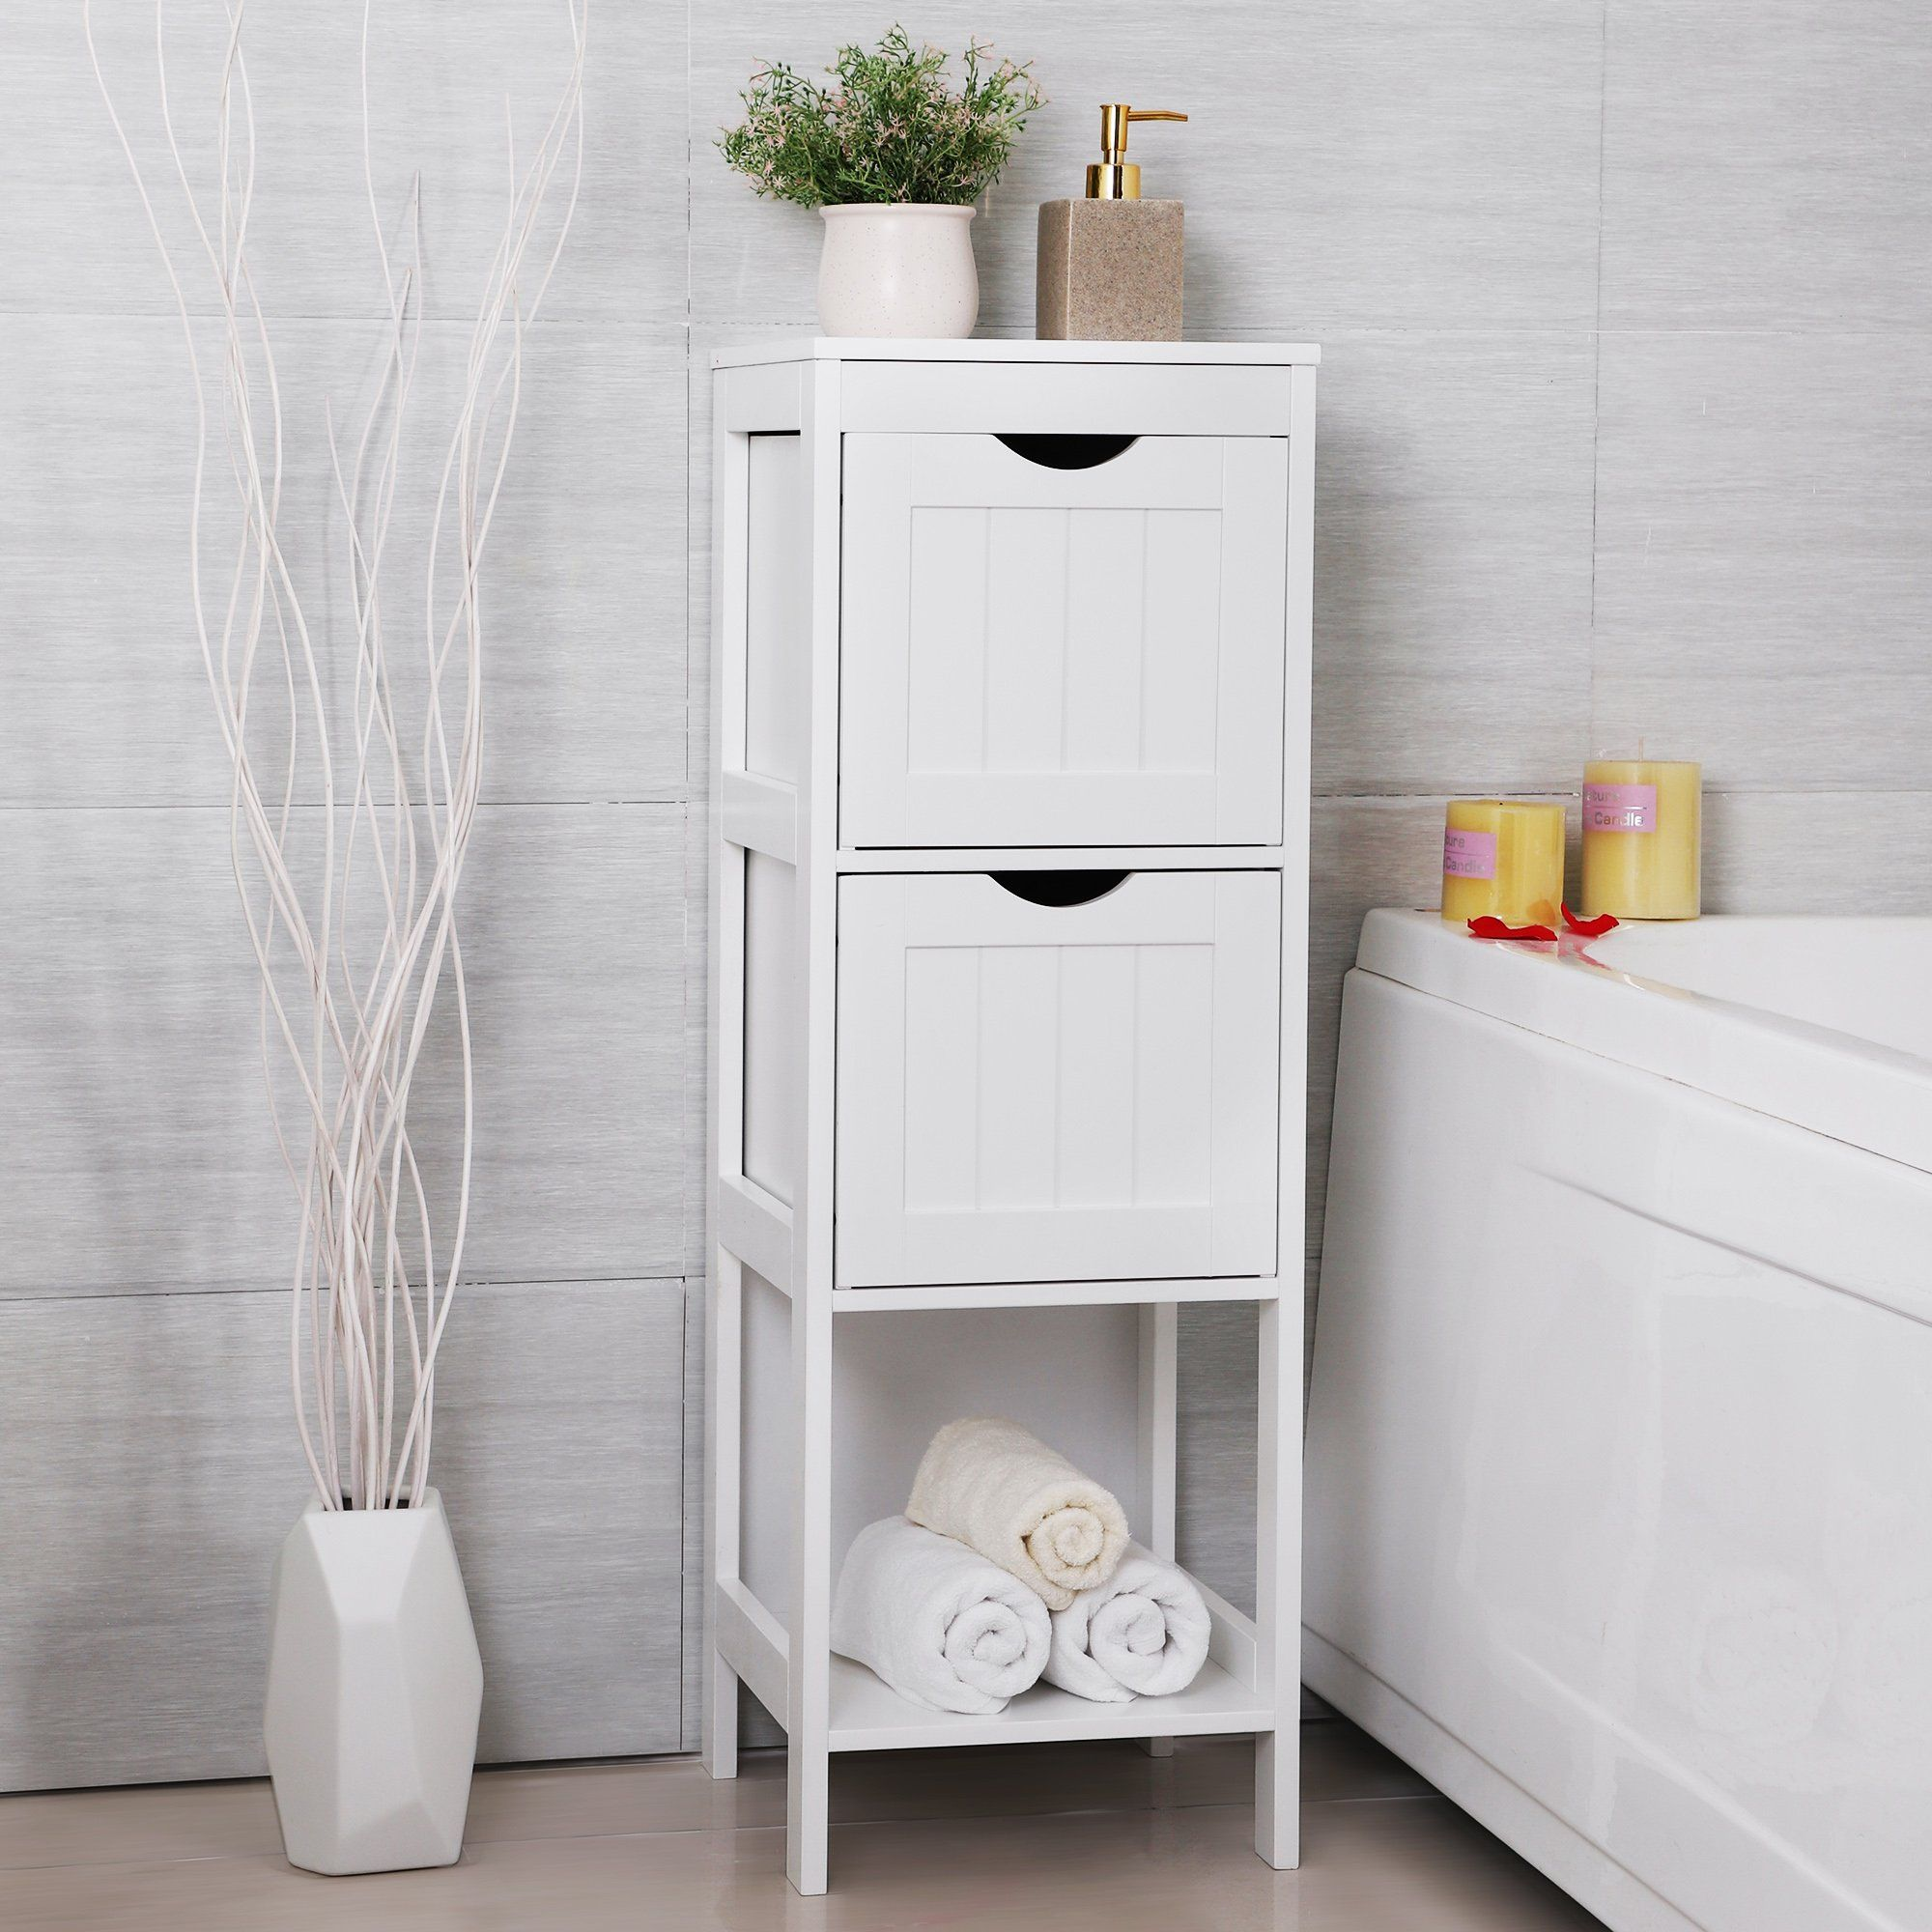 songmics bathroom floor cabinet multifunctional bathroom storage rh pinterest com